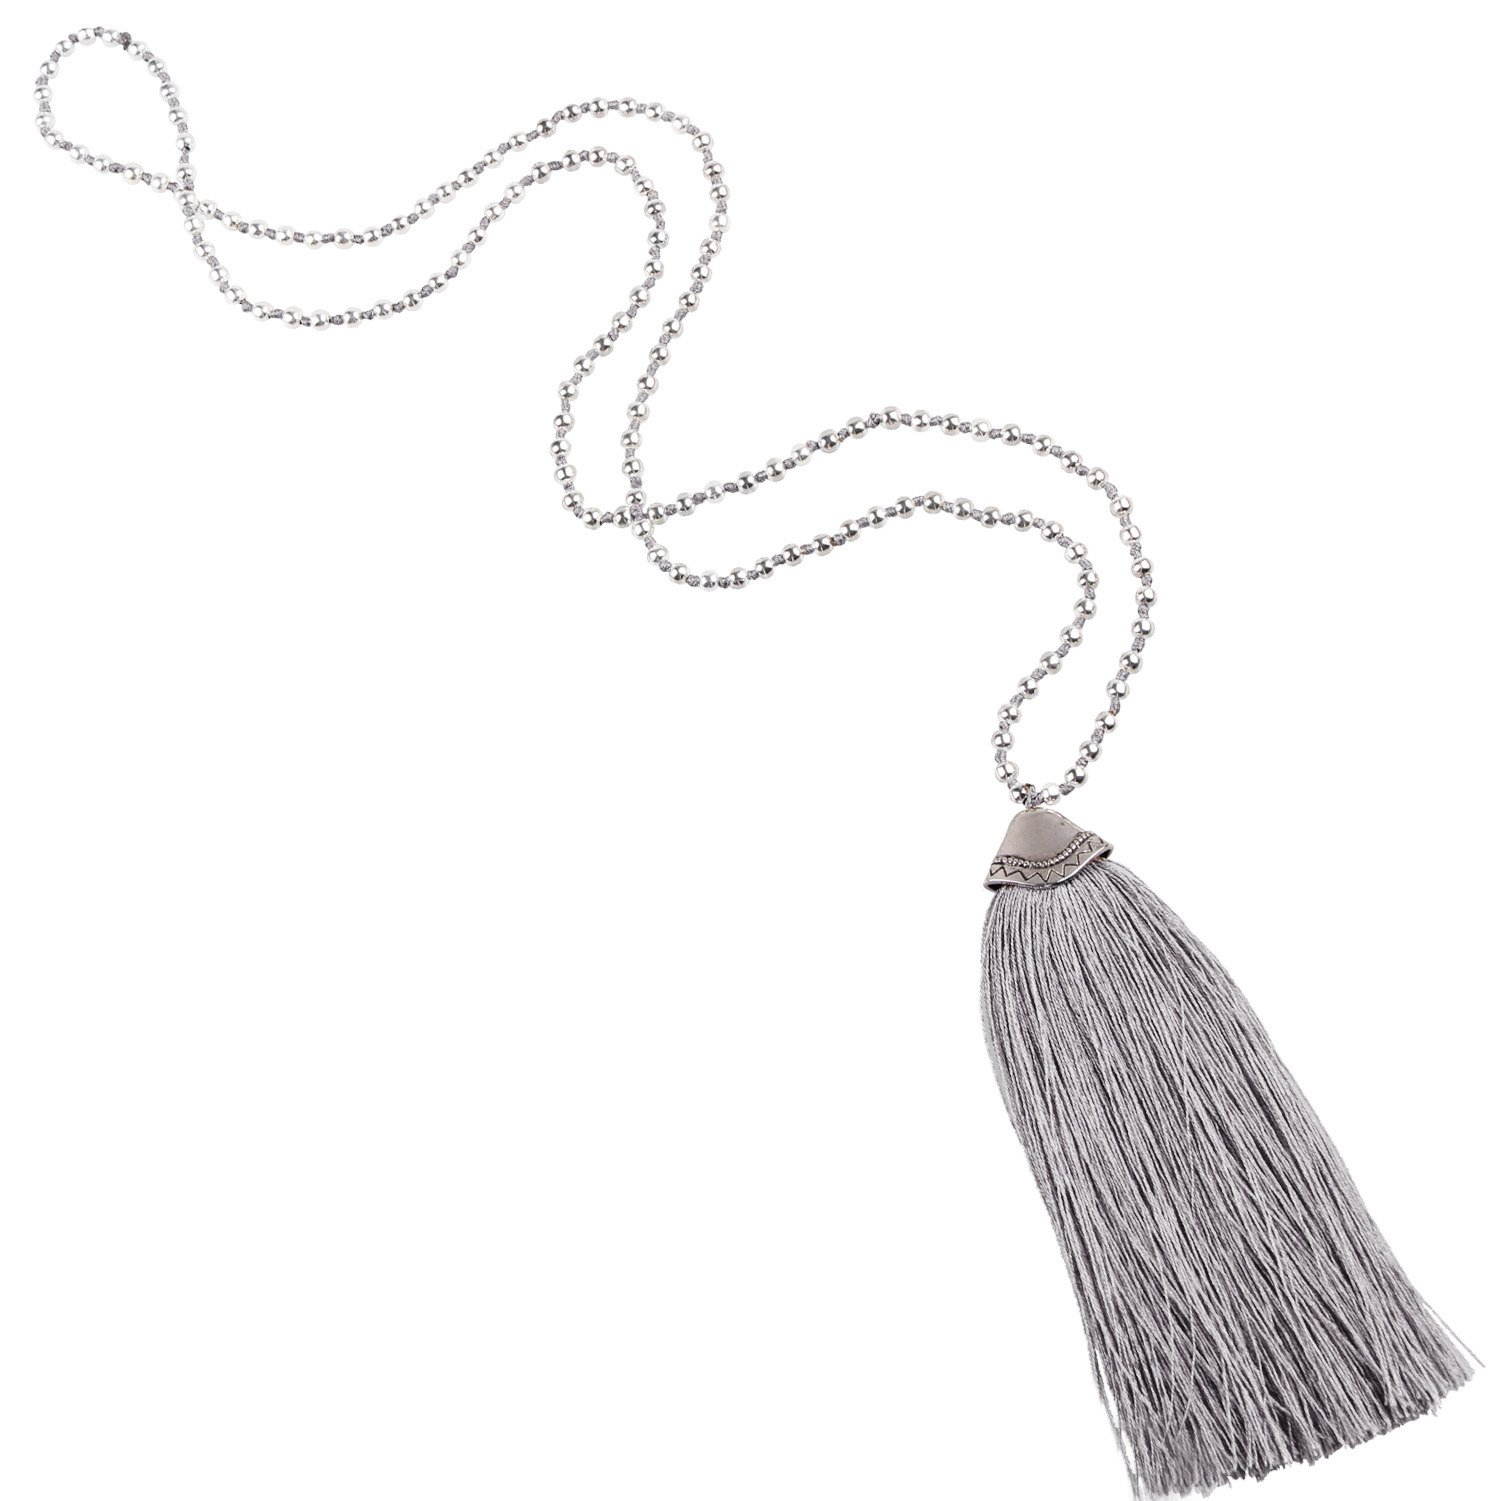 KELITCH Silver Plated Round Beaded Necklaces Handmade Color Tassel Long Pendants Necklace Fashion 32'' (Grey) by KELITCH